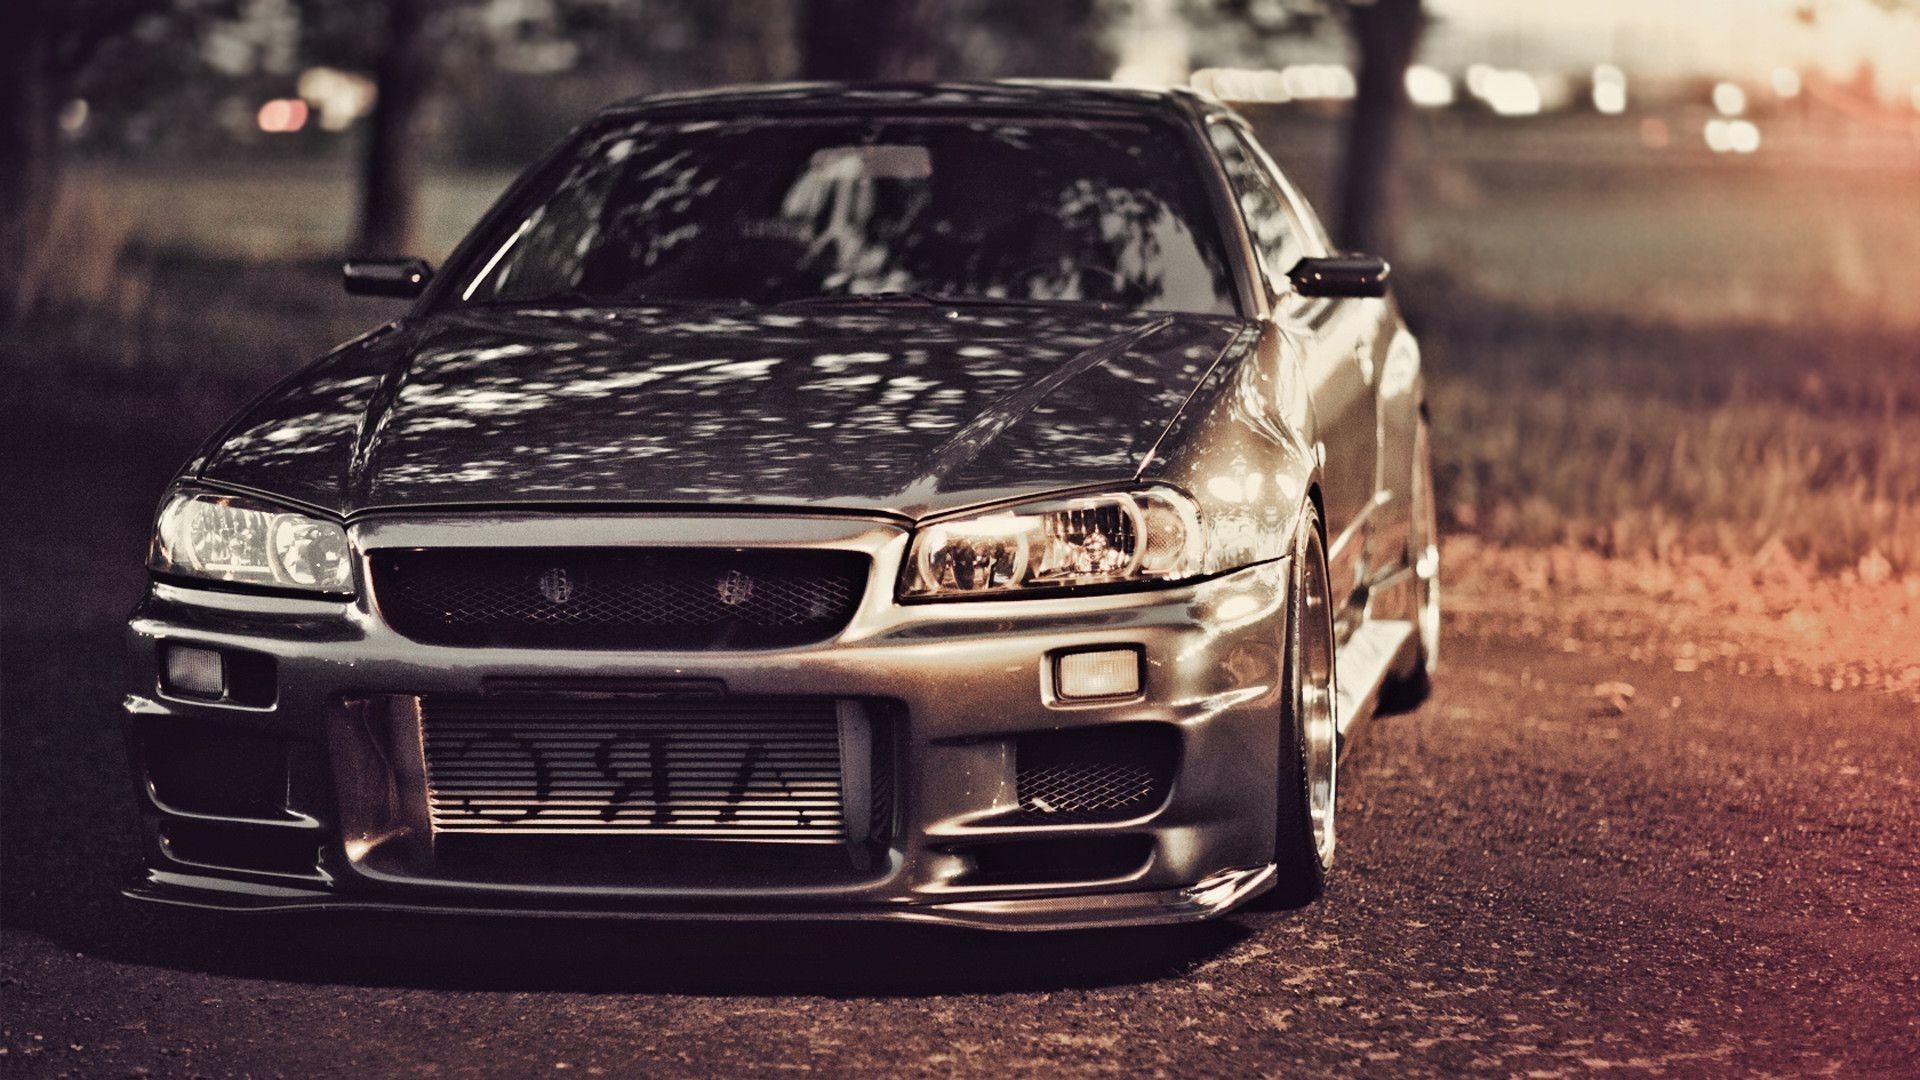 Nissan Skyline Gtr R Wallpapers Group Stopimage 1920 1080 R34